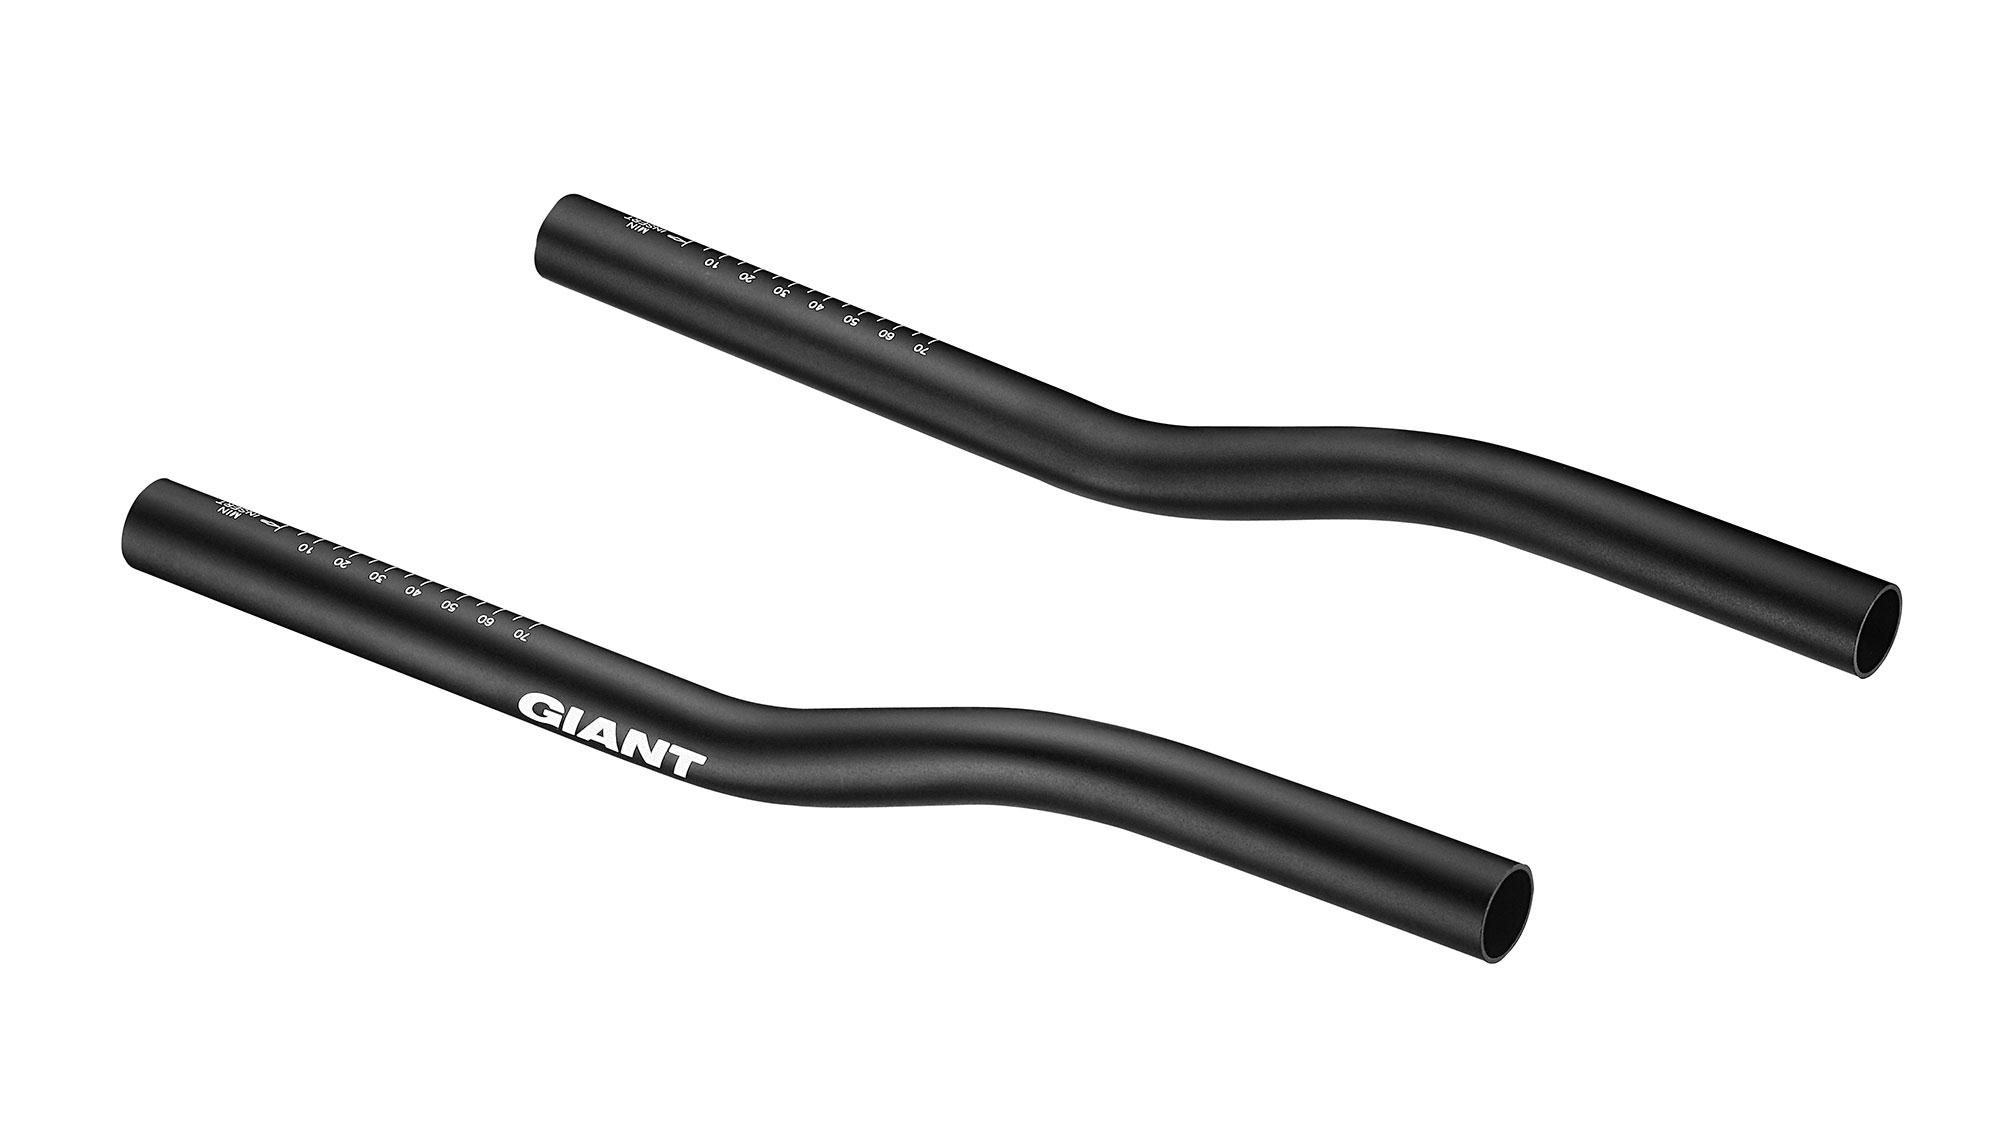 Giant Contact S-Type Bar Extensions : Ash Cycles